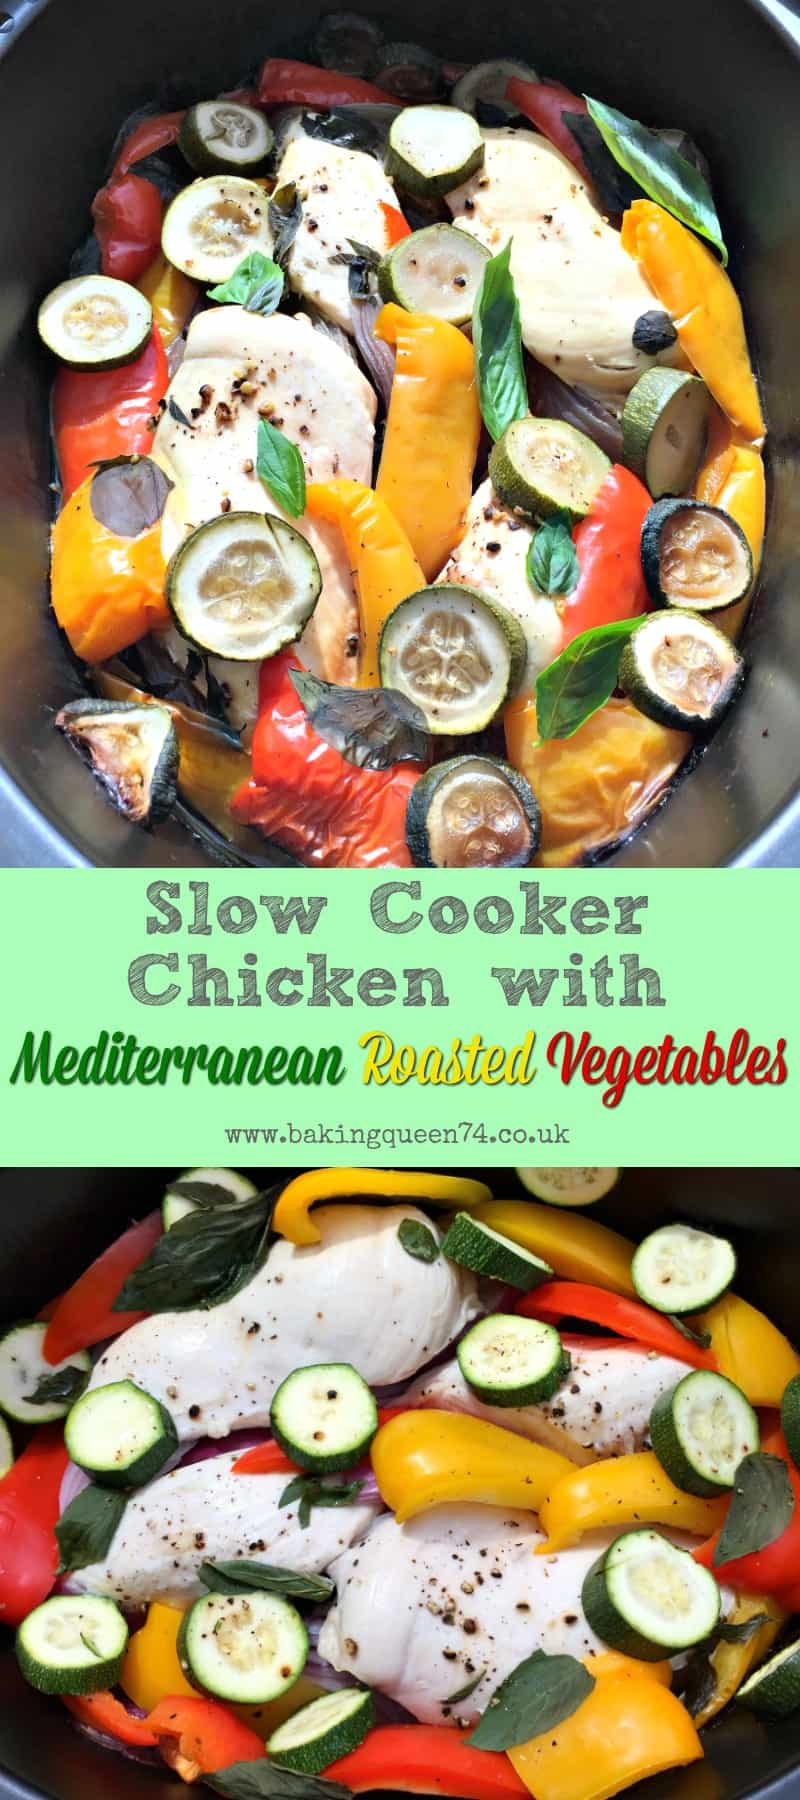 Slow Cooker Chicken with Mediterranean Roasted Vegetables ...